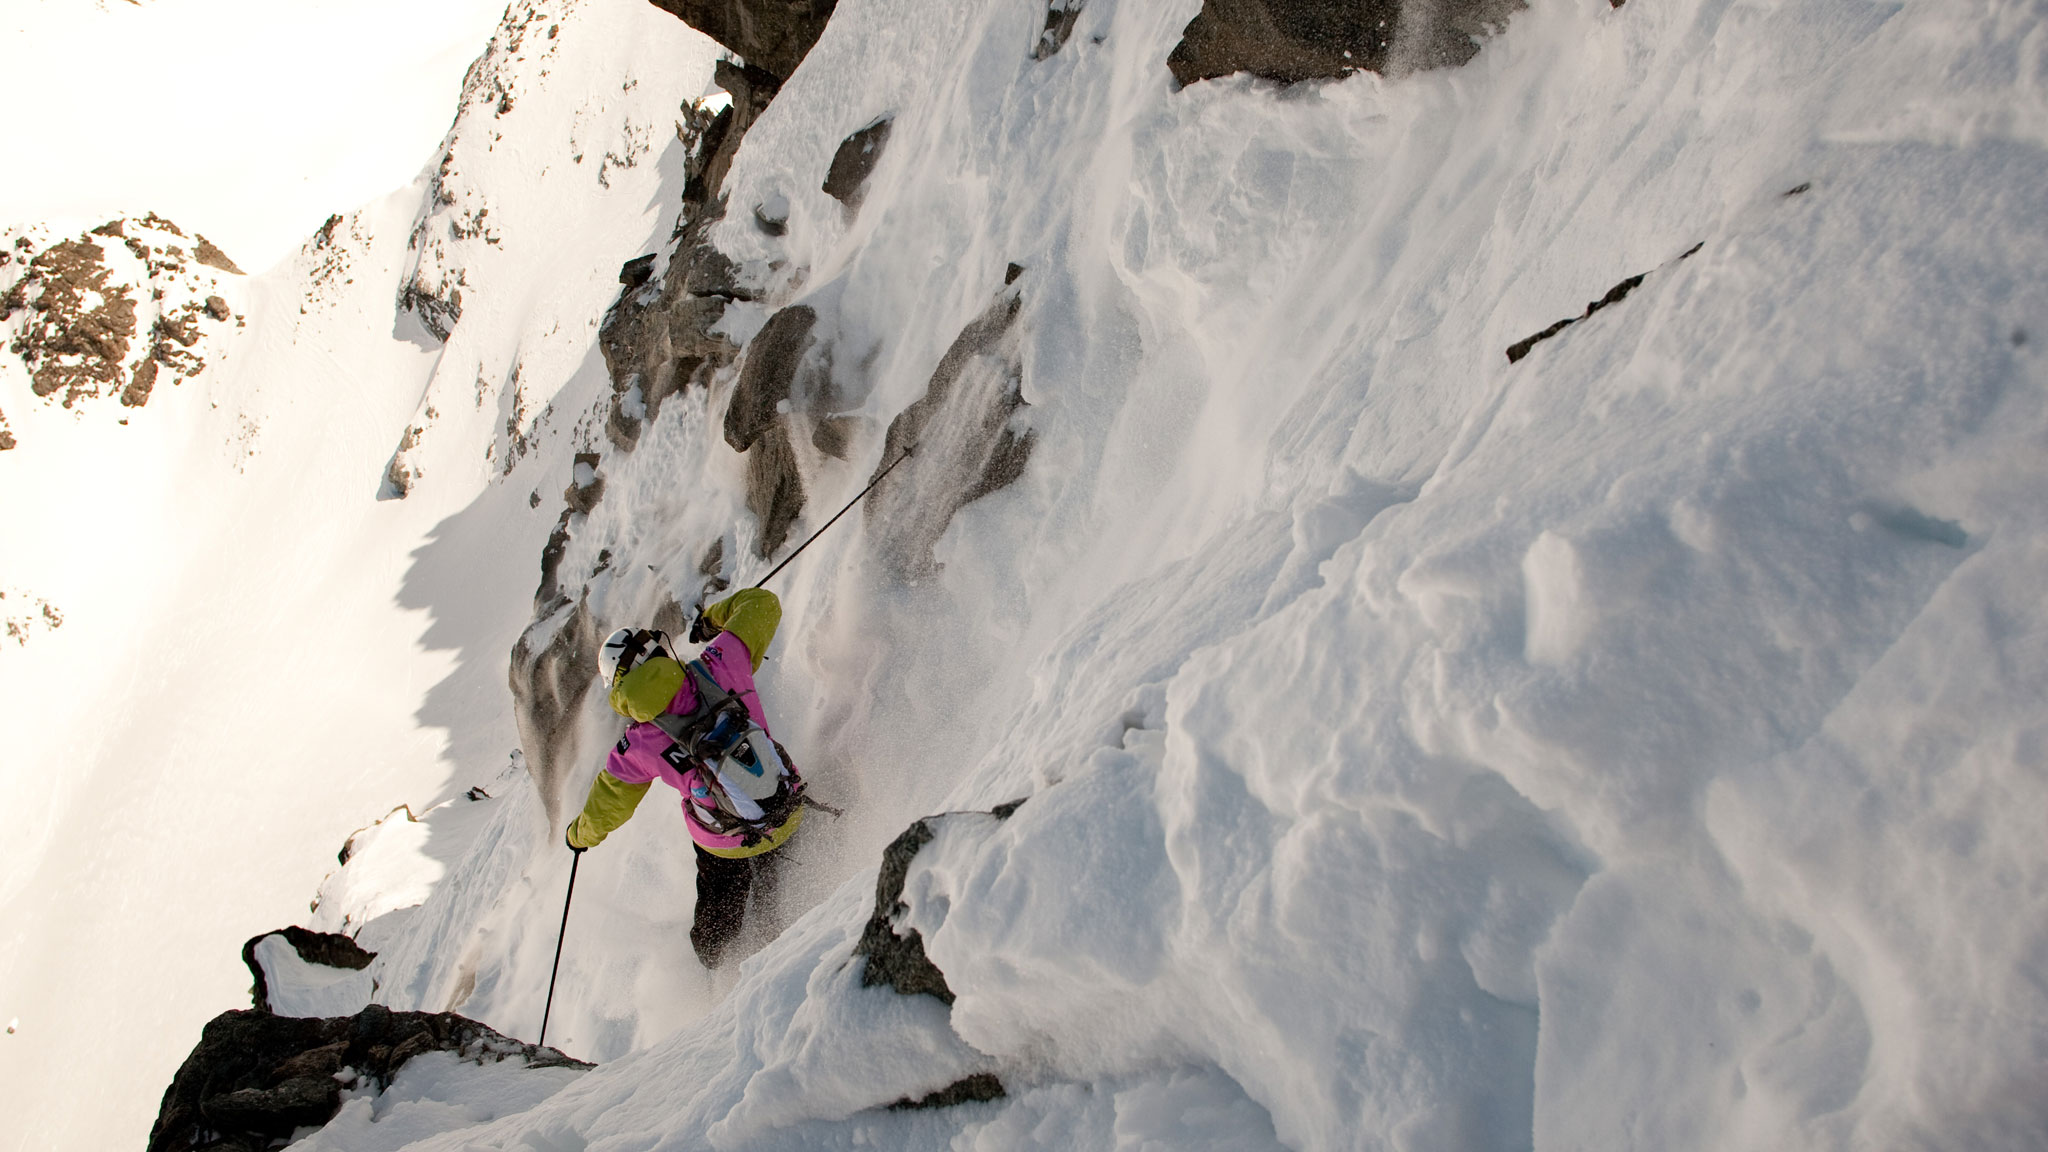 A skier drops into the legendary Bec des Rosses, the final competition venue on the Freeride World Tour.